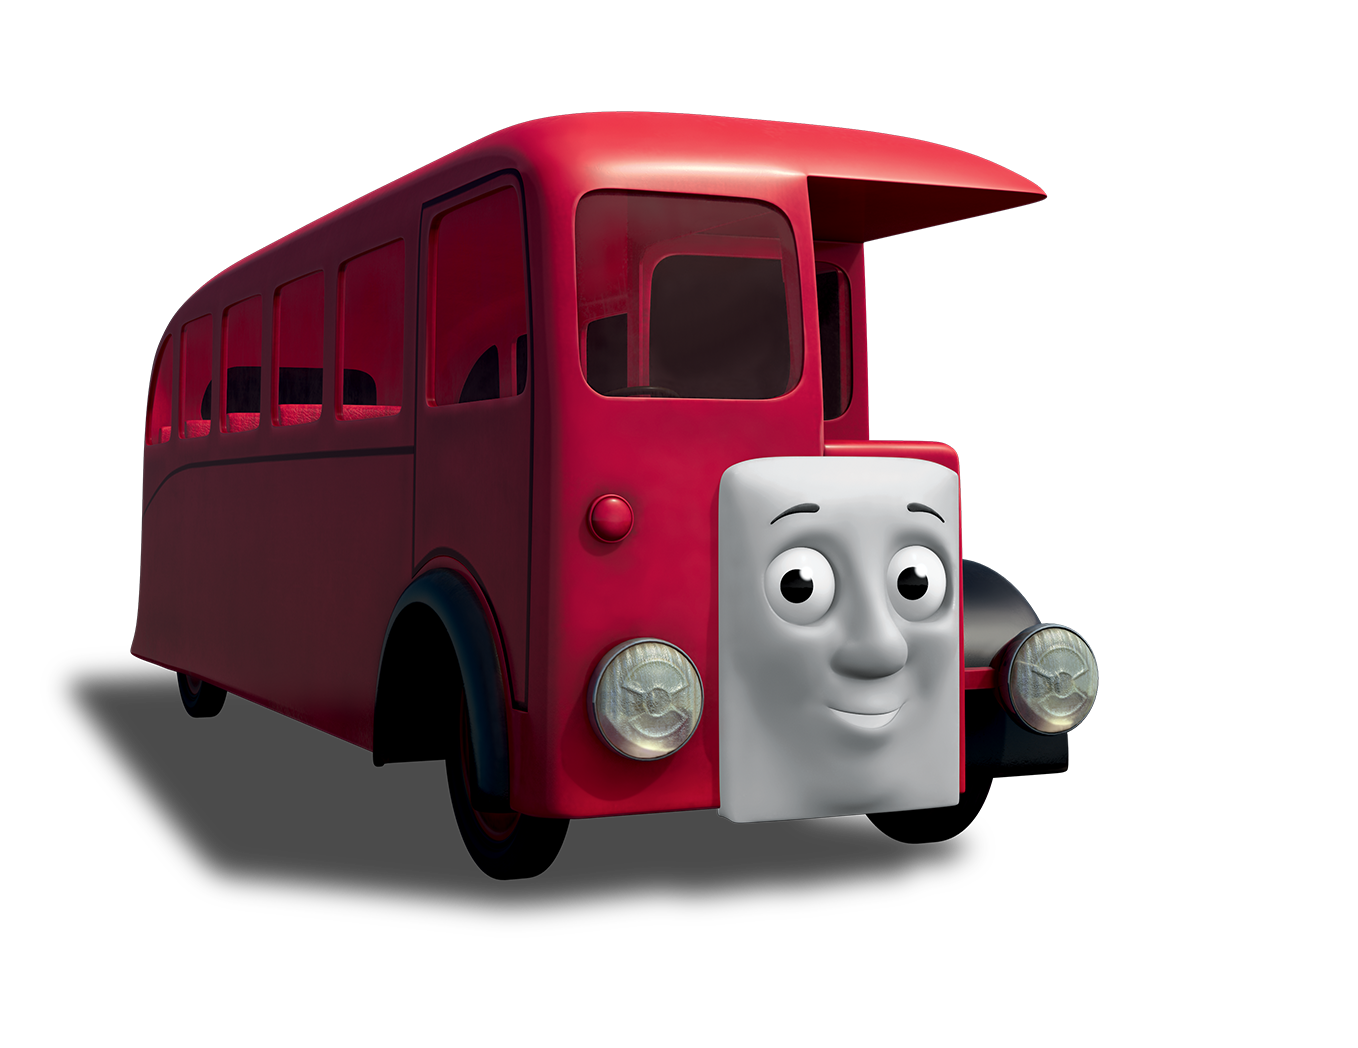 Thomas - Character Profile & Bio | Thomas & Friends on thomas bus logo, thomas bus chevy, thomas school bus wiring, air compressor piping layout diagrams, thomas bus blueprints, thomas bus seats, school bus brake system diagrams, thomas bus lights, thomas bus gmc, thomas bus ford, thomas bus chassis, thomas bus assembly, thomas bus engine, thomas international bus, commercial truck pre-trip diagrams, military diagrams, thomas bus electrical diagrams, thomas hdx school bus, thomas bus rear suspension, thomas bus parts,